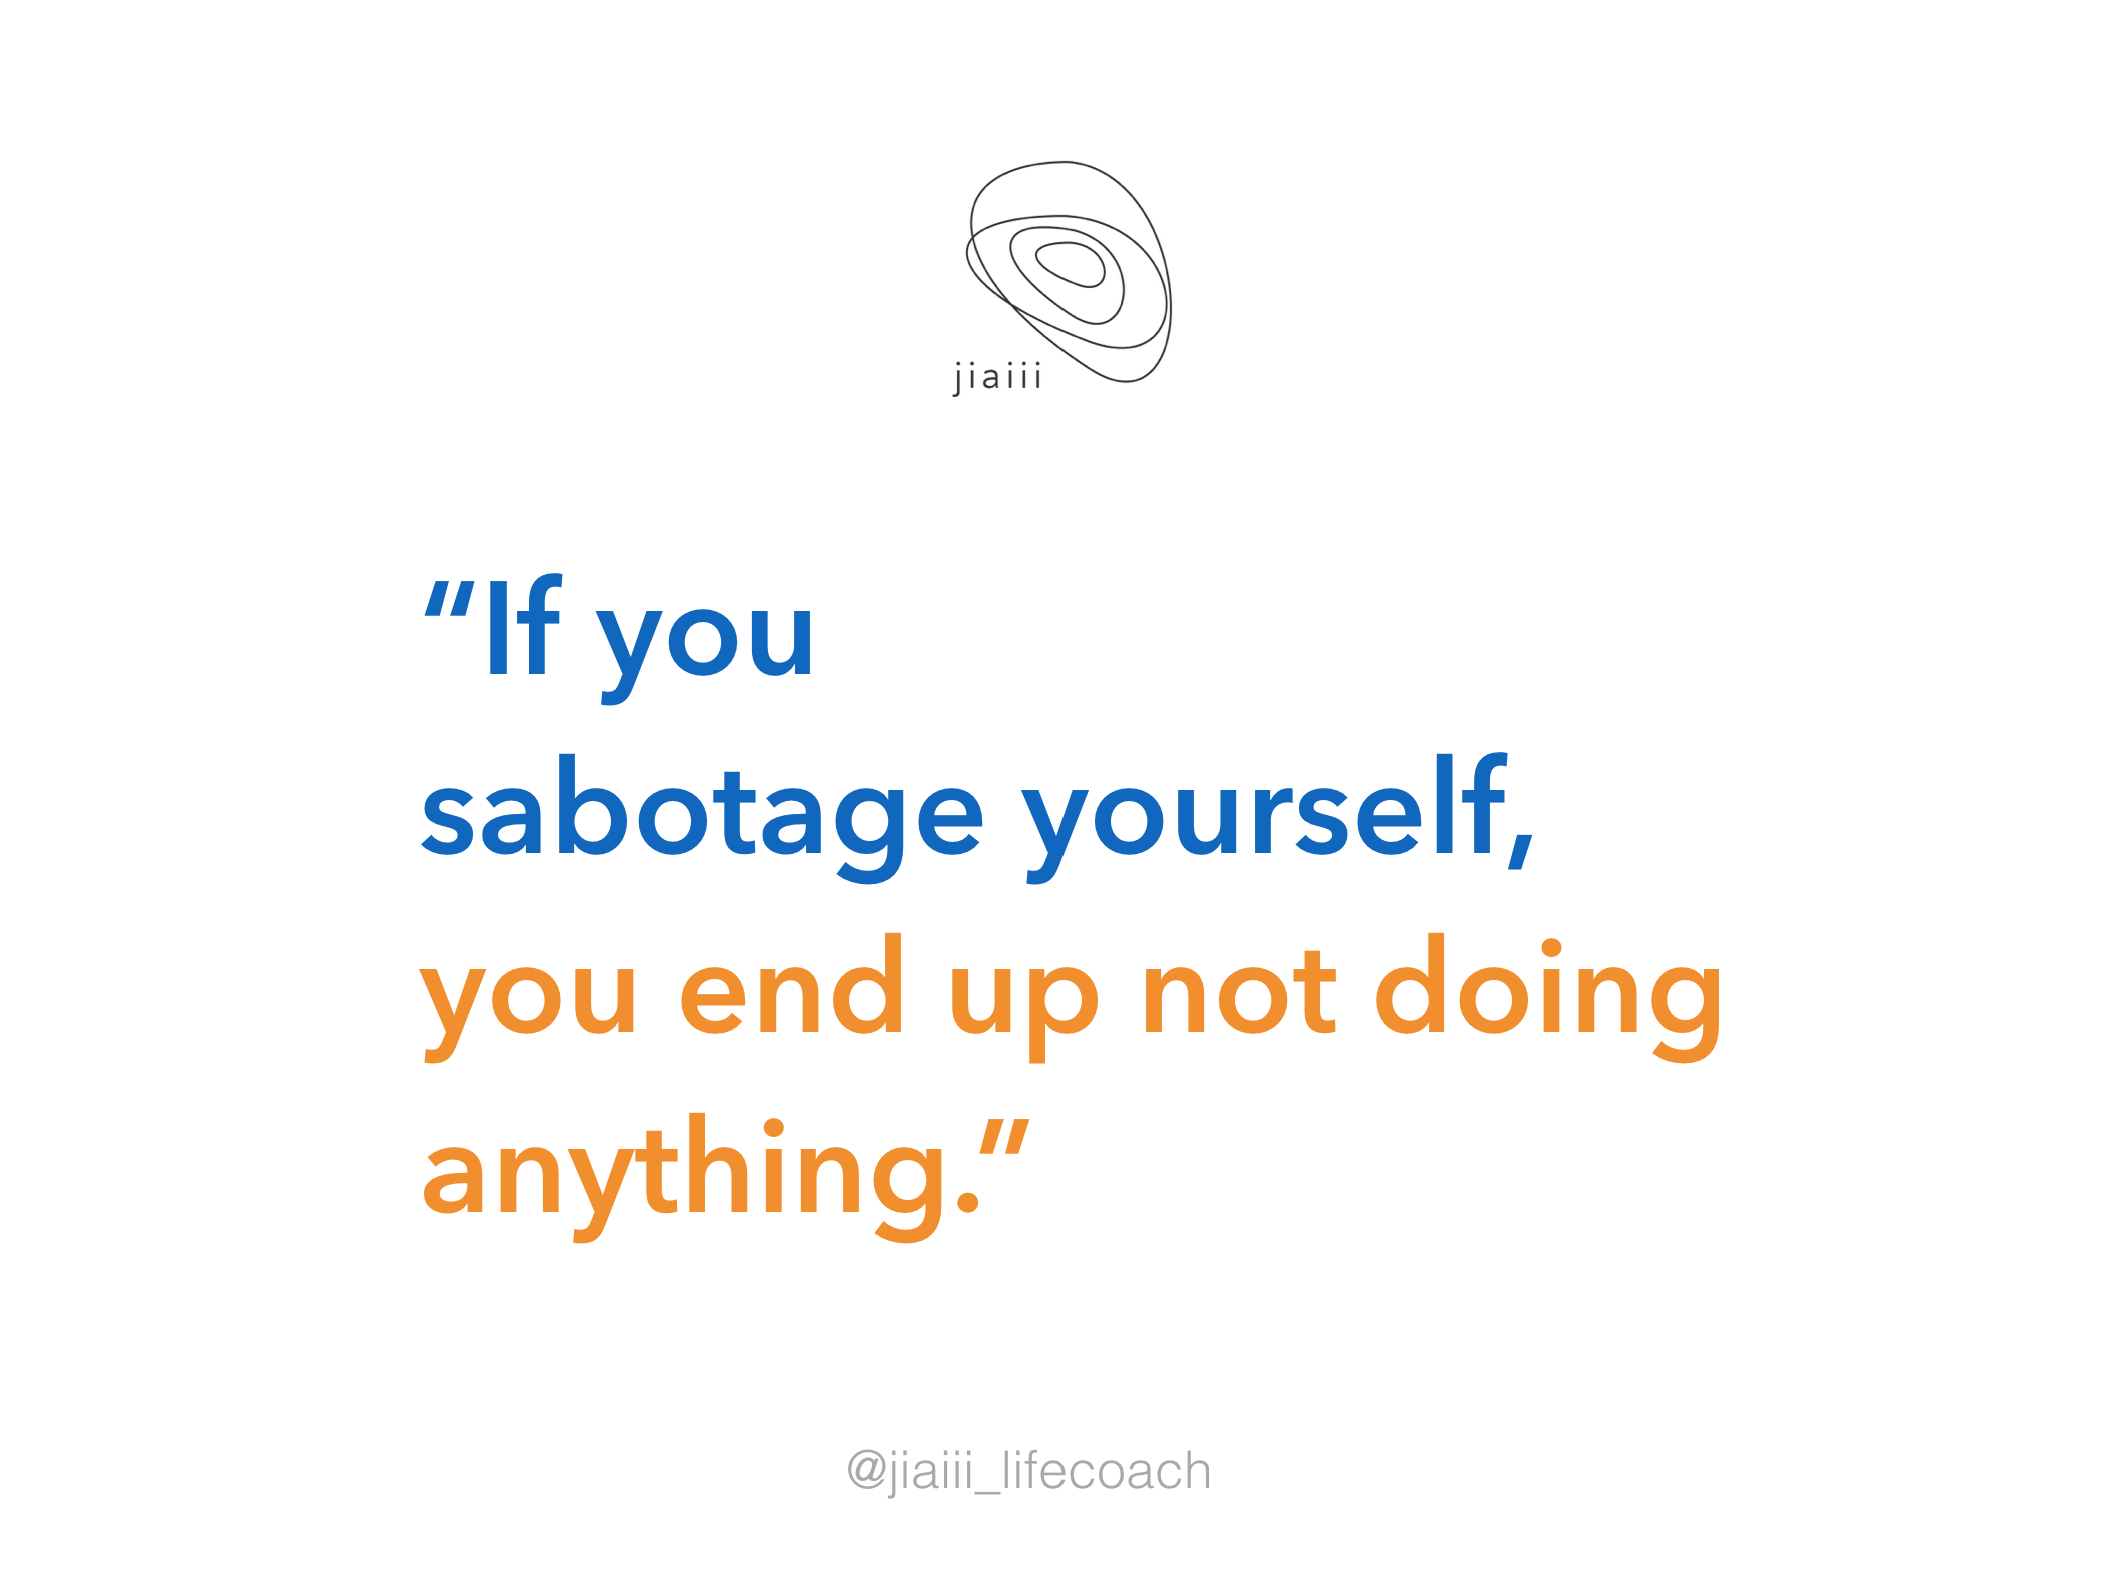 first step 1 Identify how you are sabotaging yourself and where did you learn to sabotage yourself.  Contact step 2 to Rin